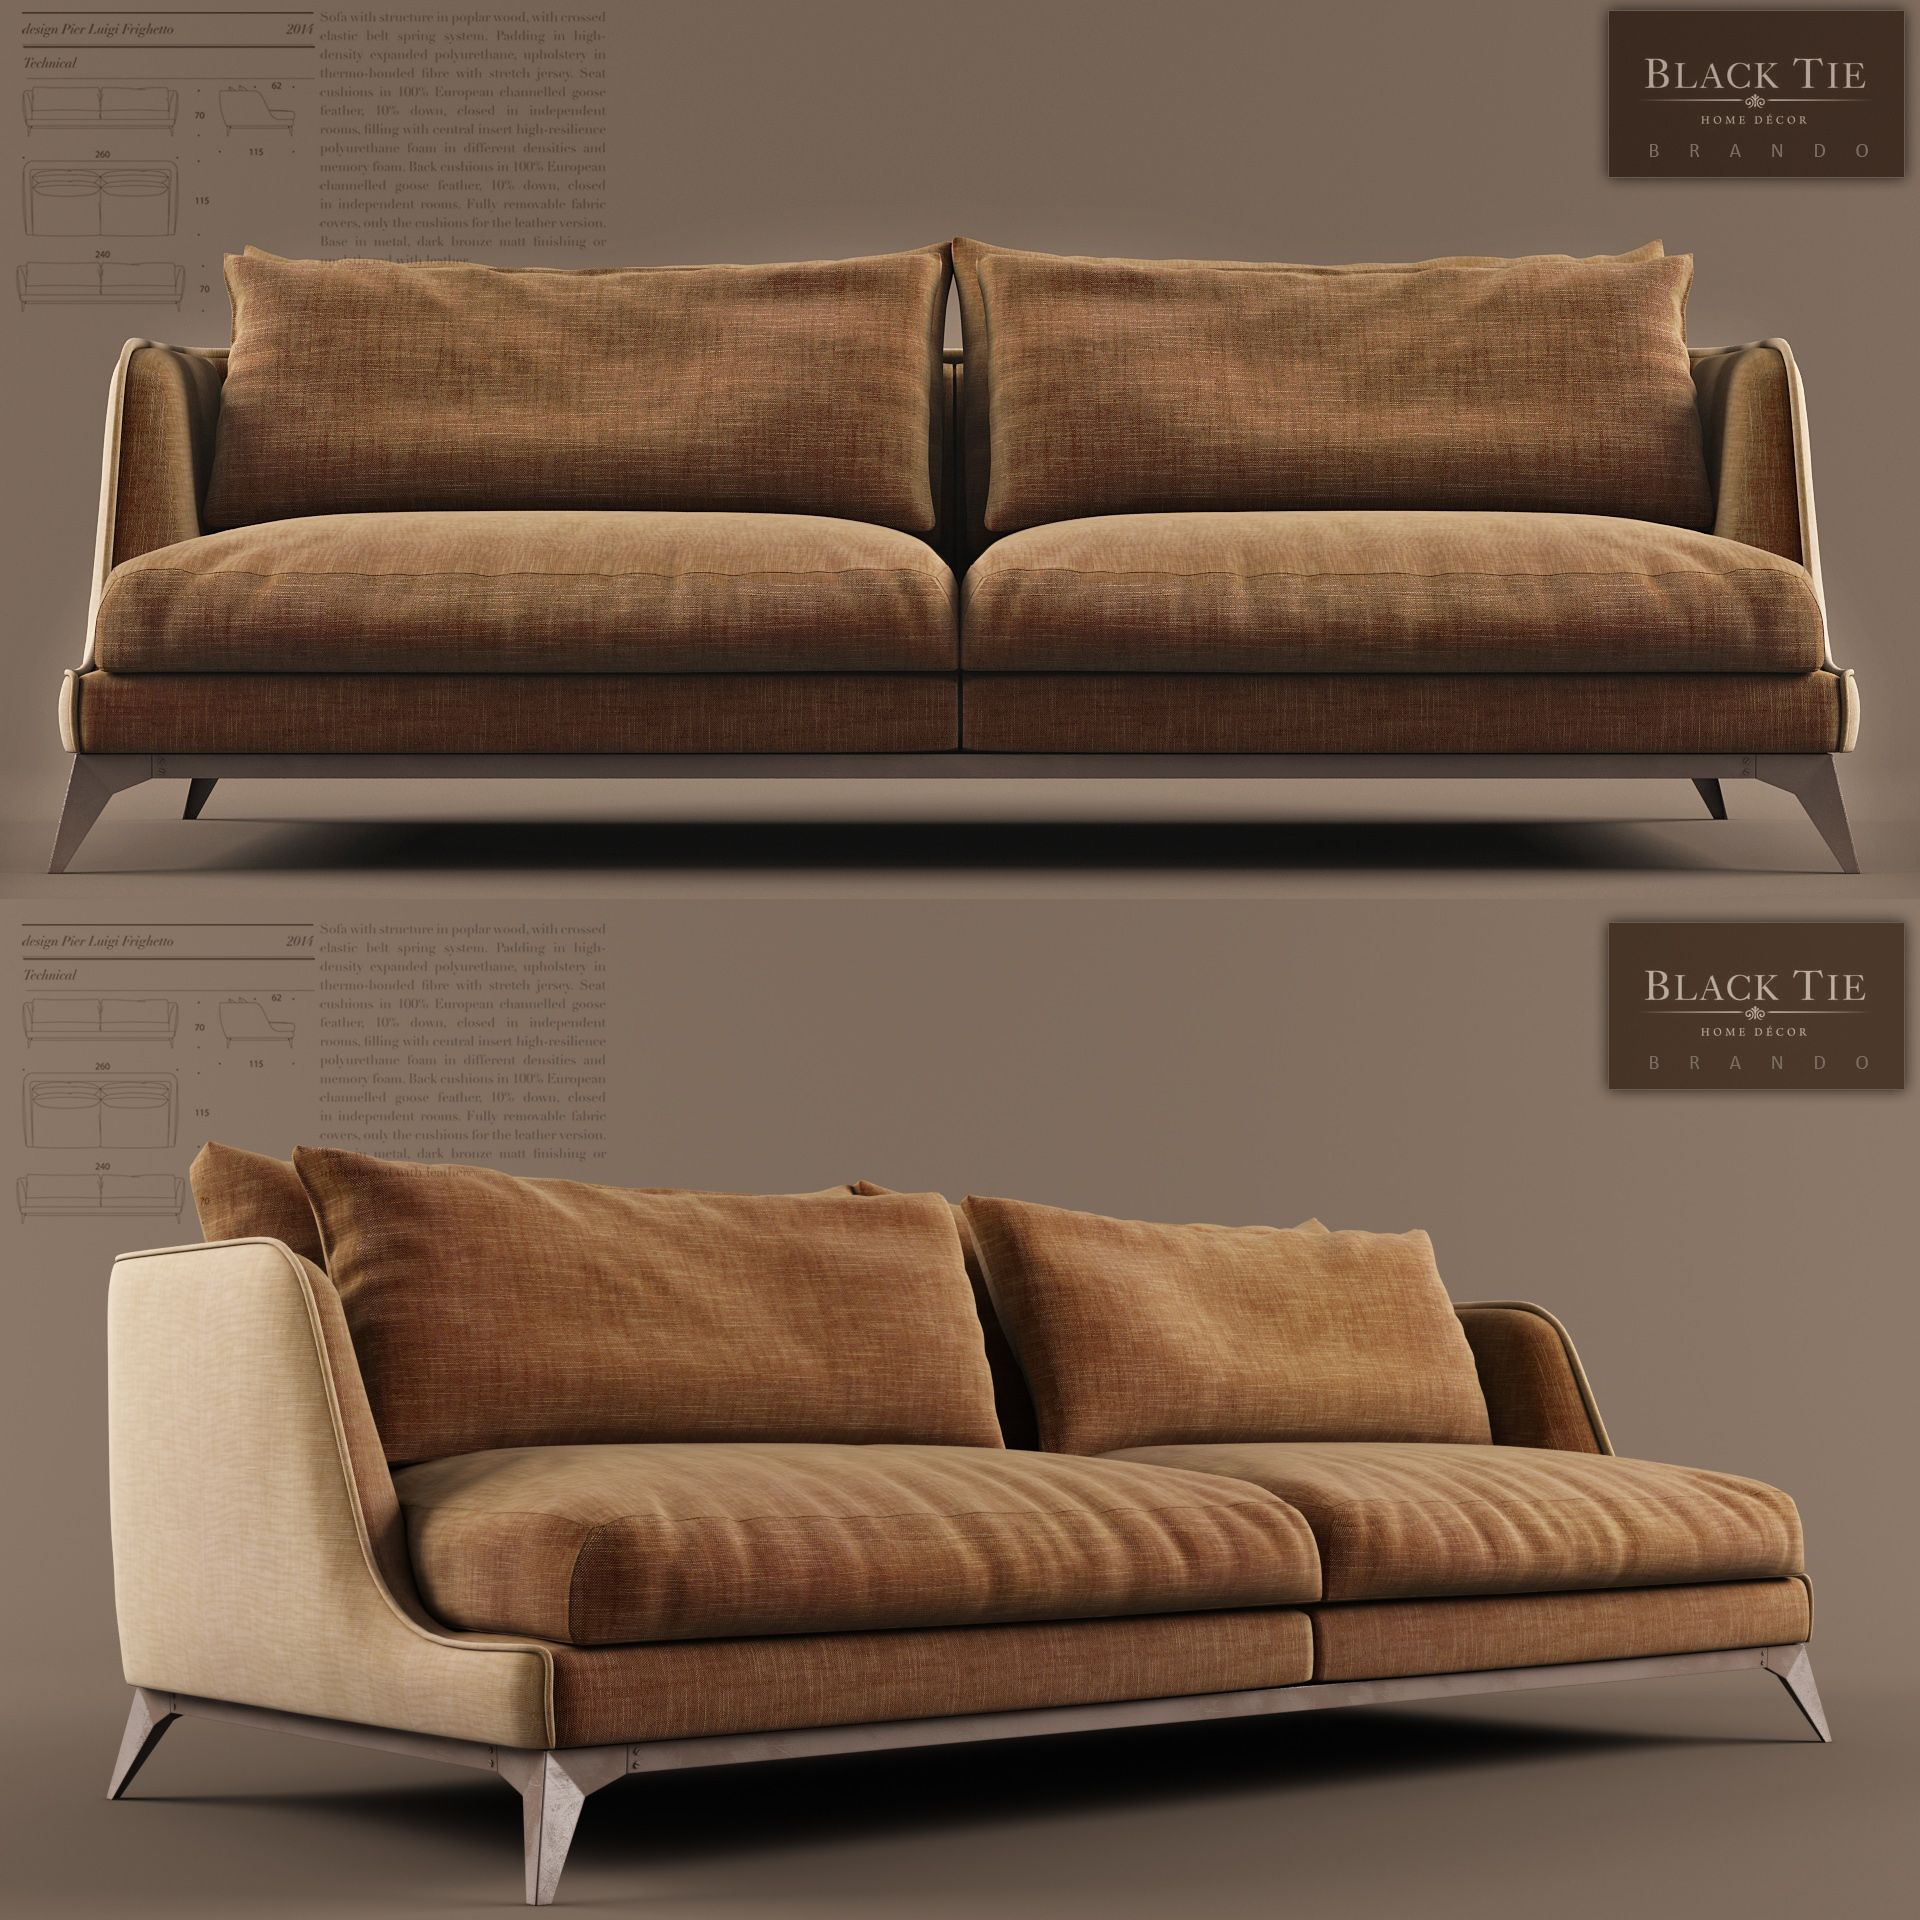 Design By Pier Luigi Frighetto Sofa With Structure In Poplar Wood With Crossed Elastic Belt Spring System Padding In High Den Cekyat Mobilya Mobilya Tasarimi